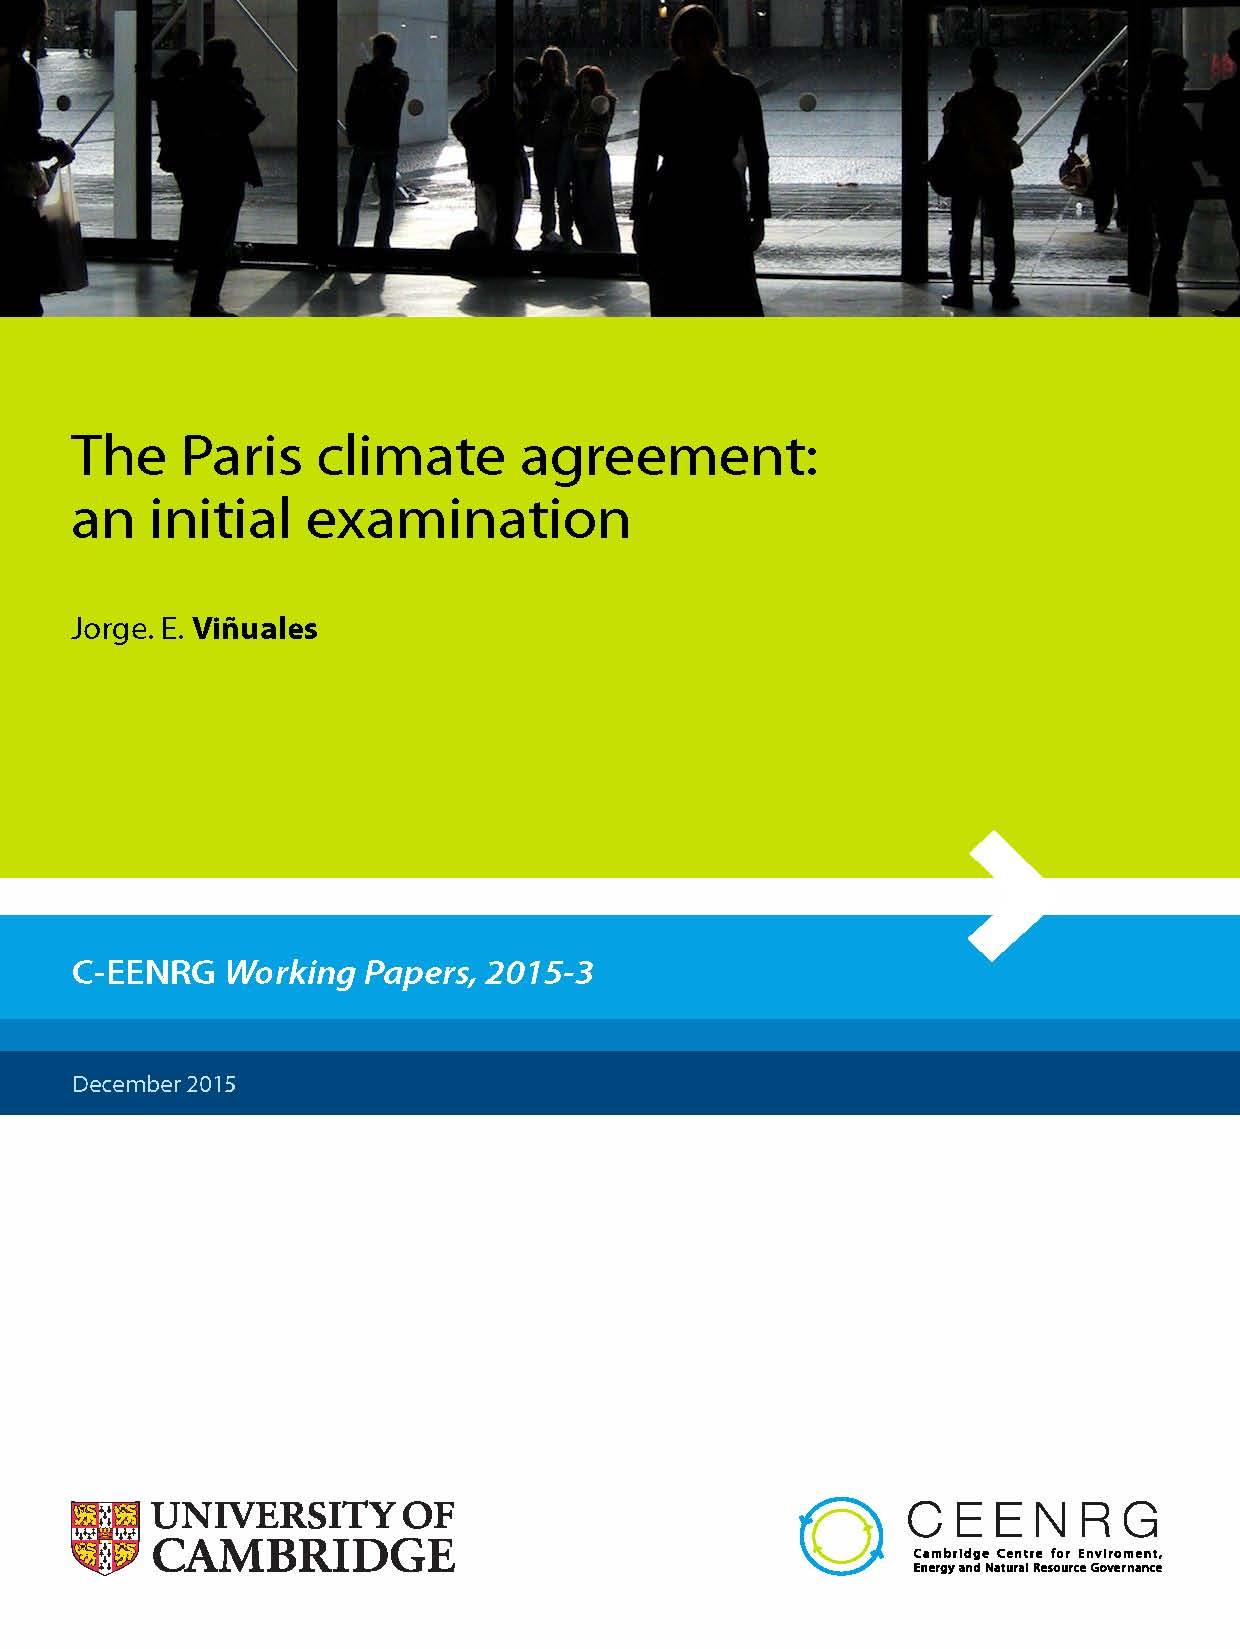 The Paris climate agreement: an initial examination